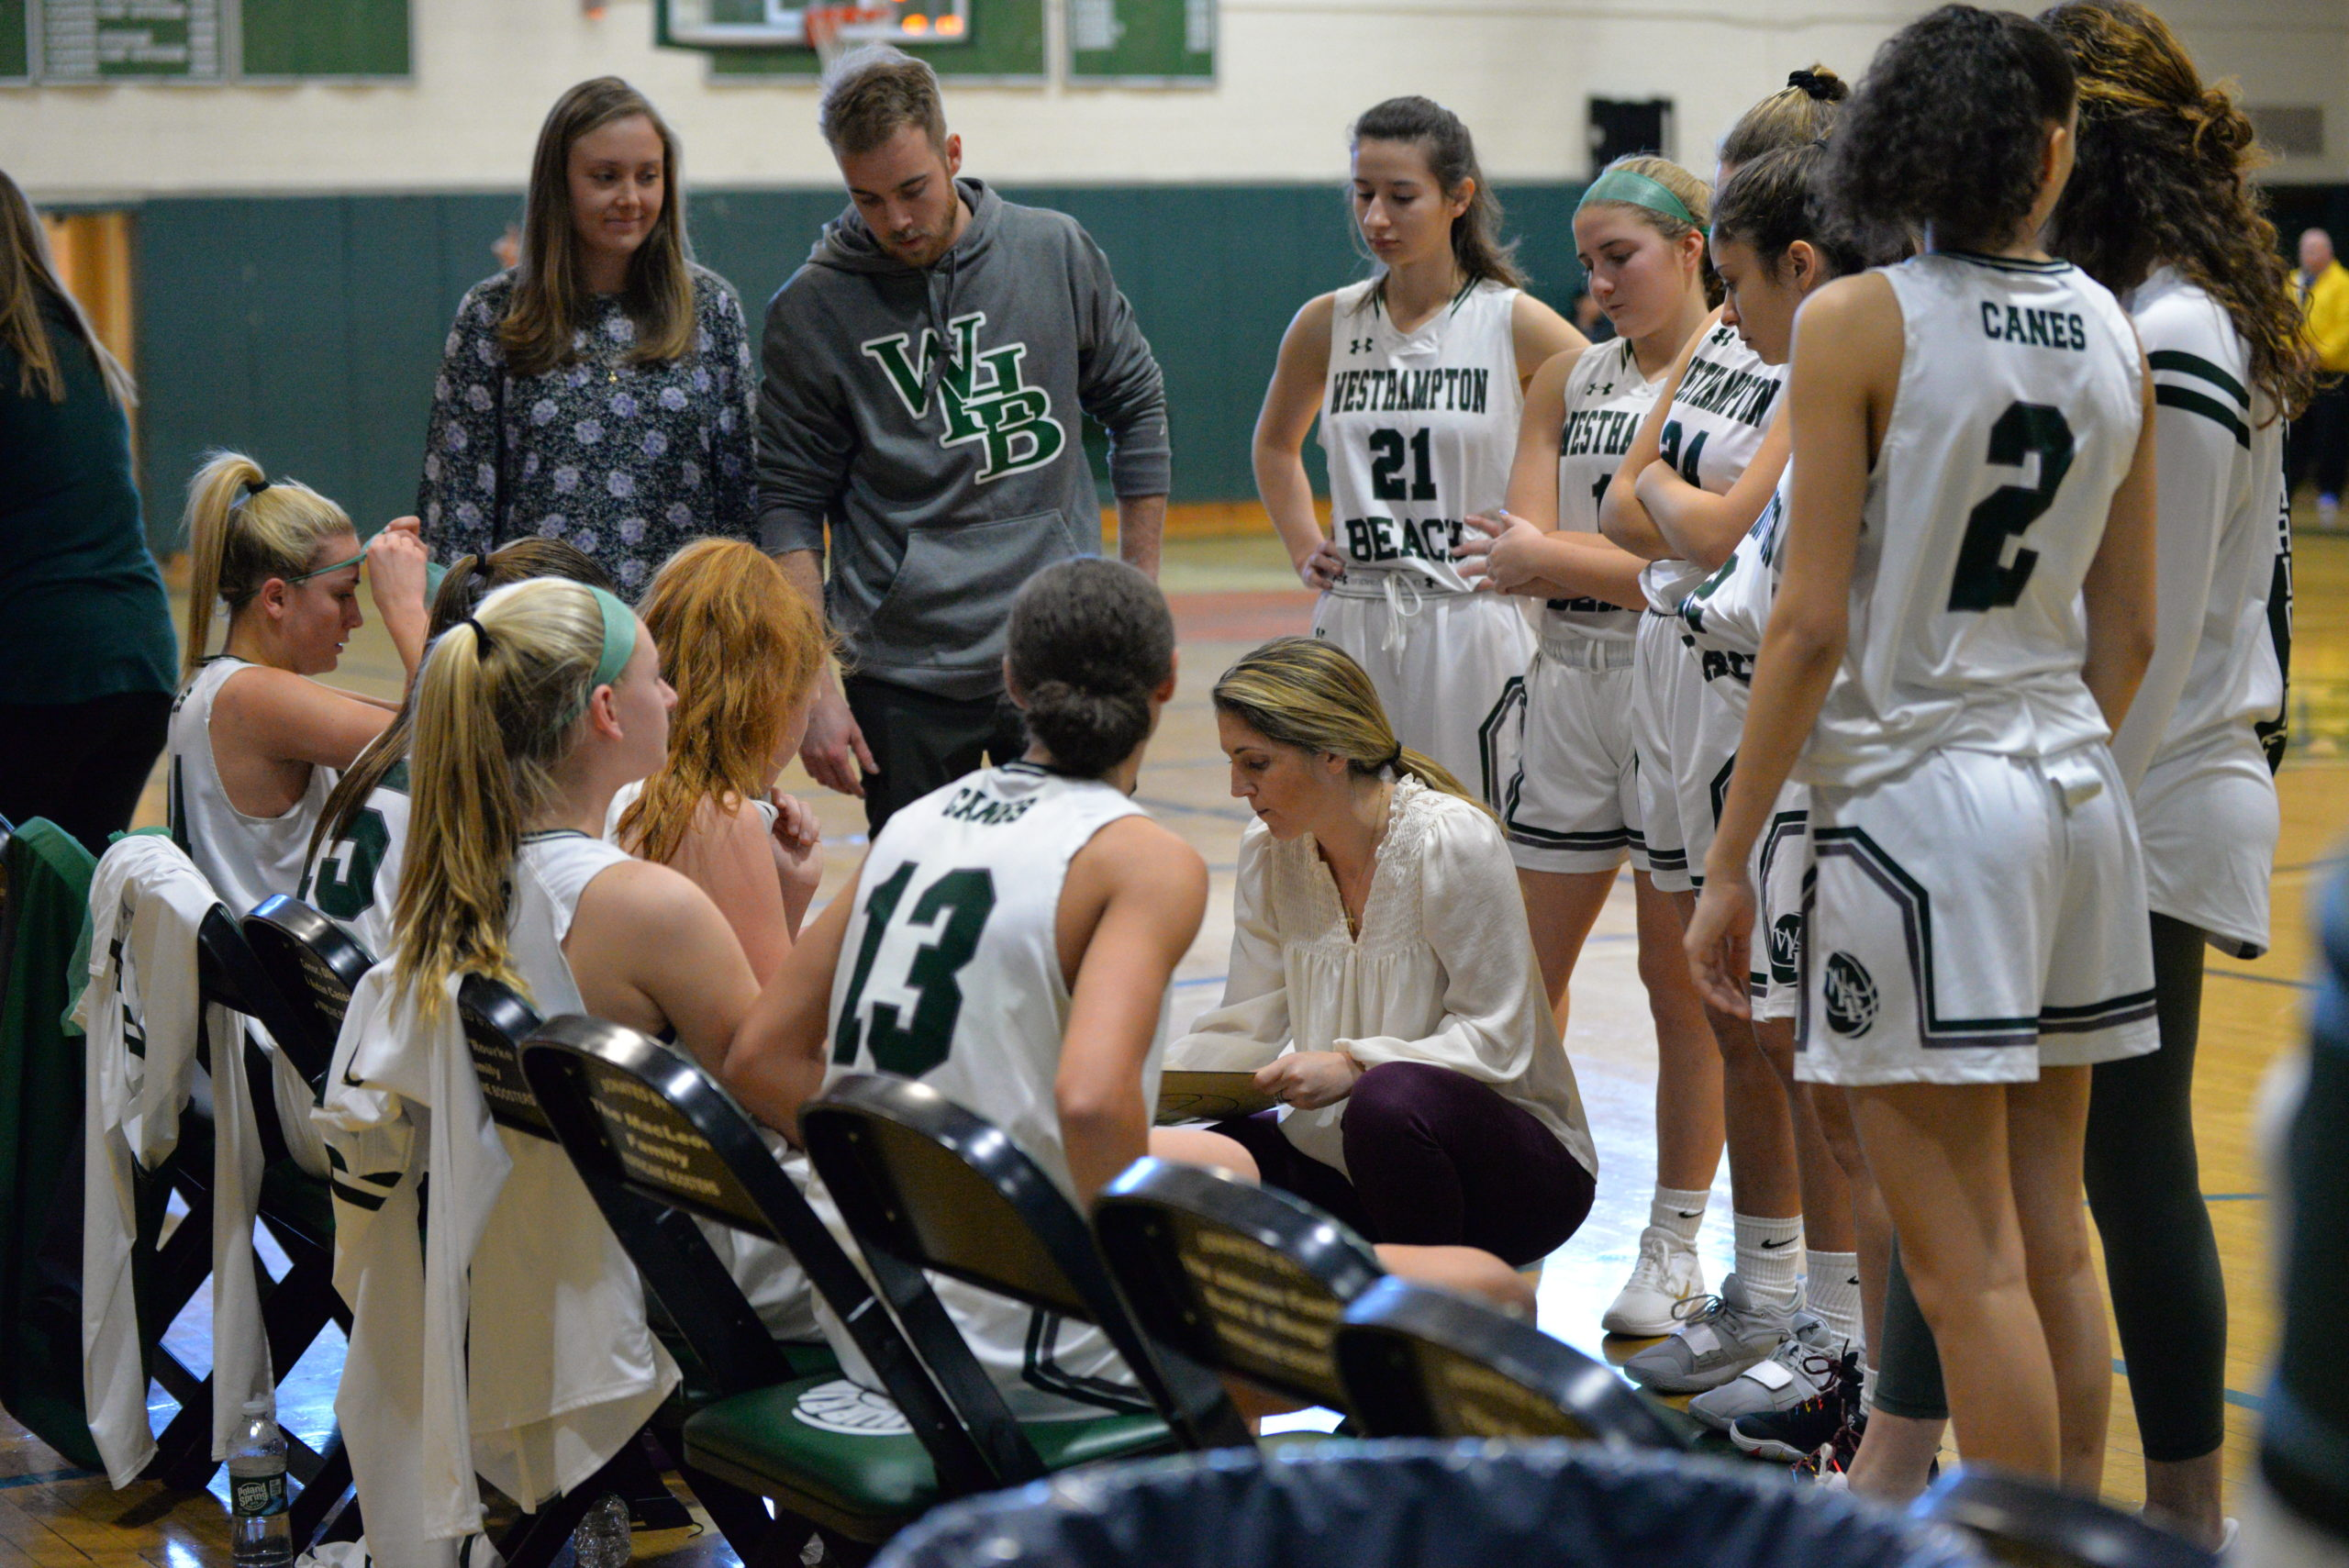 Westhampton Beach head coach Katie Peters goes over some strategy with her players during a time out.